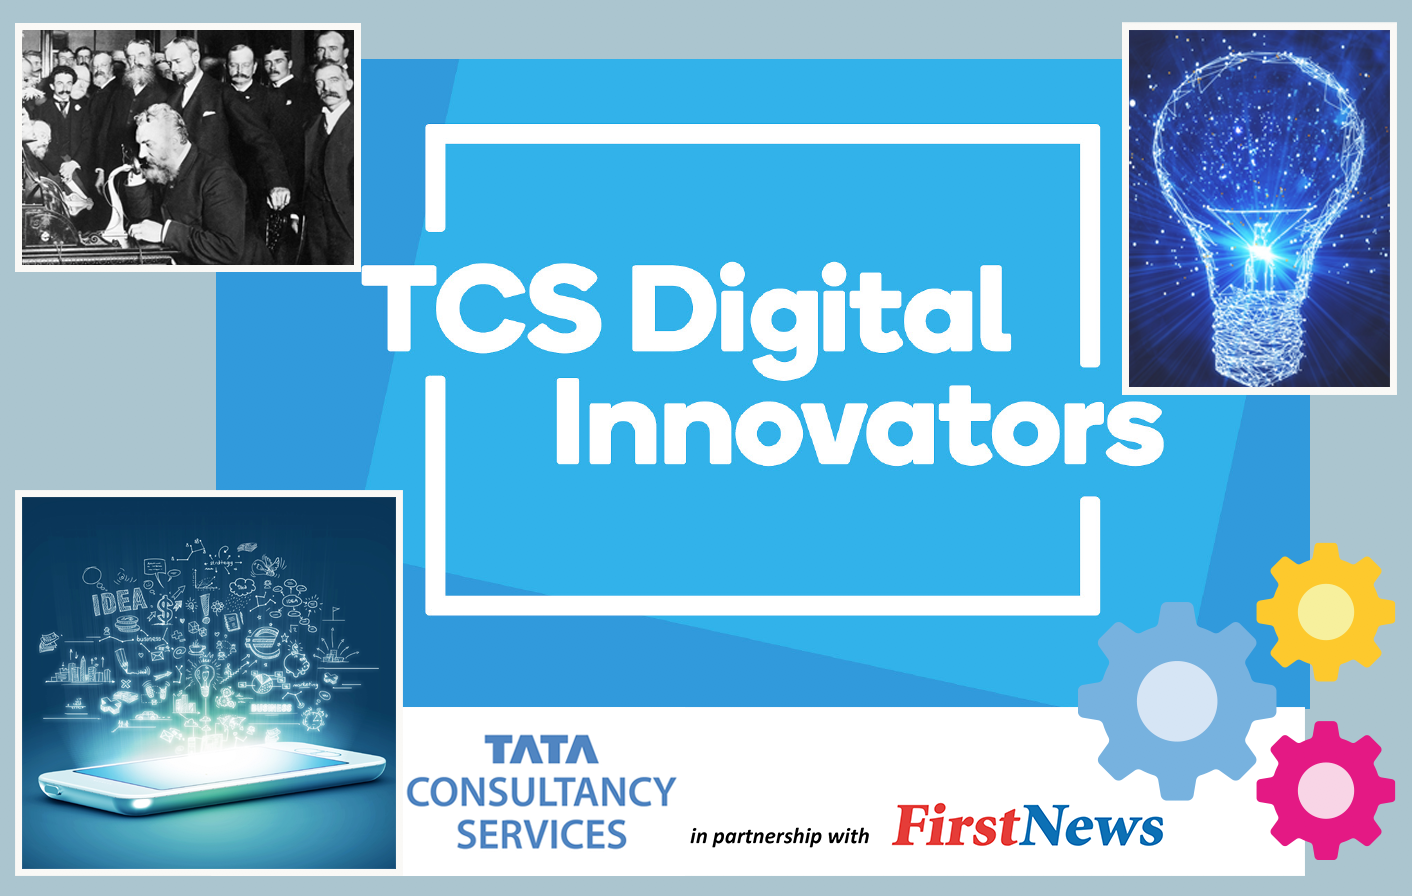 TCS Digital Innovators